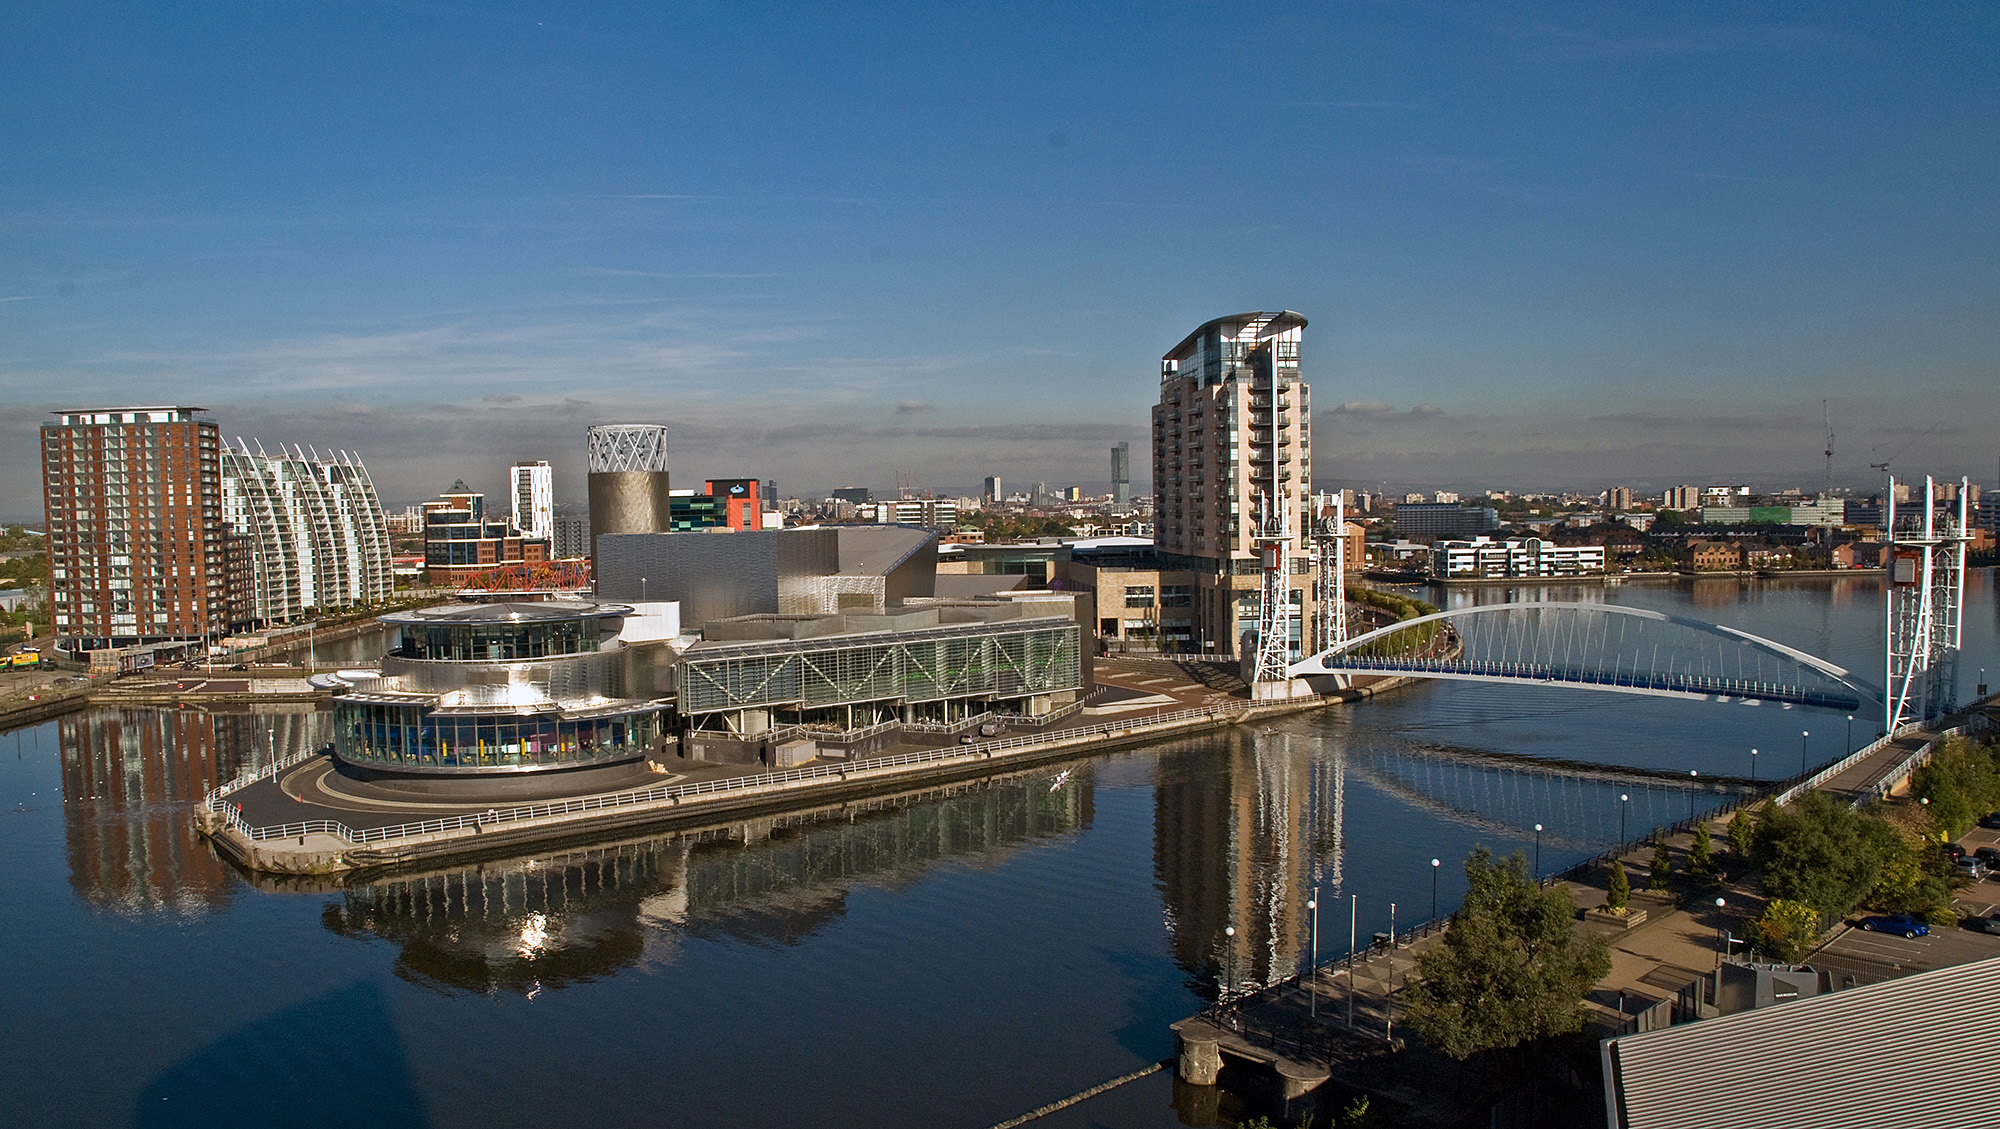 Looking down on Salford Quays